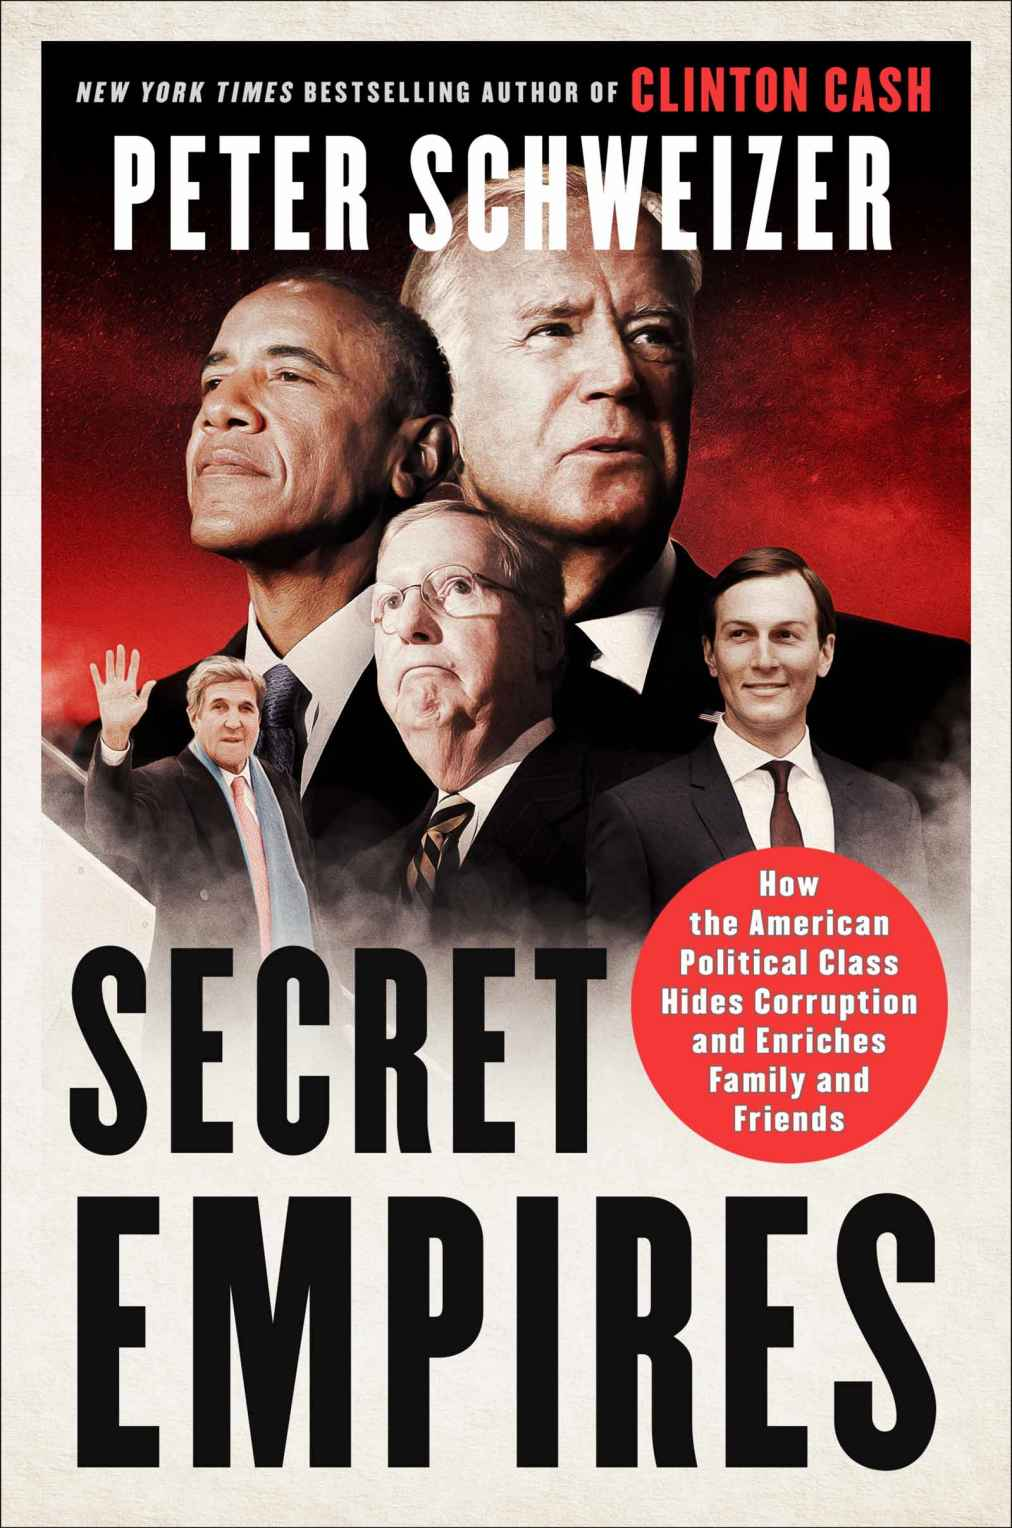 Secret Empires - Peter Schweizer [kindle] [mobi]